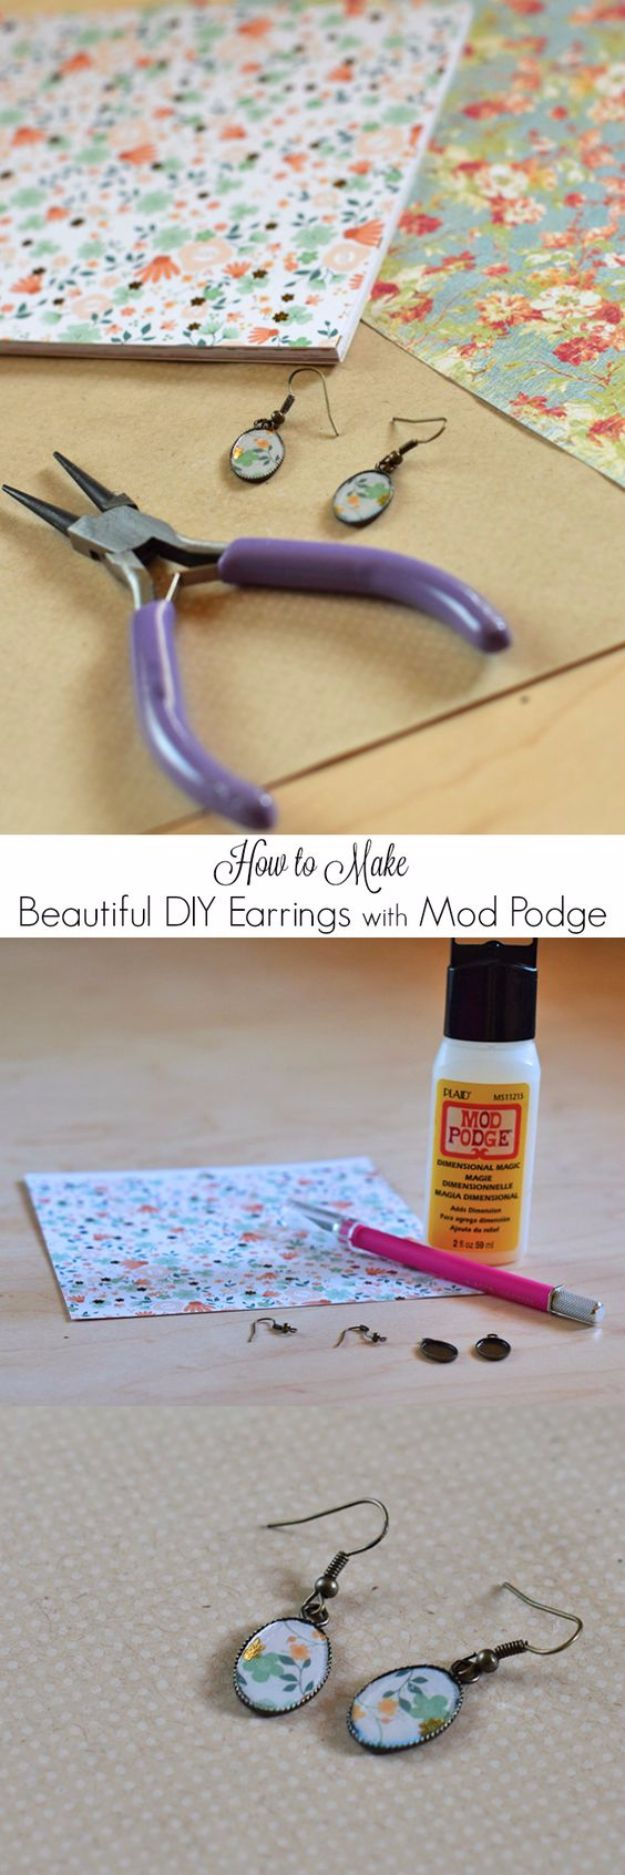 Mod Podge Crafts - DIY Earrings With Mod Podge - DIY Modge Podge Ideas On Wood, Glass, Canvases, Fabric, Paper and Mason Jars - How To Make Pictures, Home Decor, Easy Craft Ideas and DIY Wall Art for Beginners - Cute, Cheap Crafty Homemade Gifts for Christmas and Birthday Presents http://diyjoy.com/mod-podge-crafts